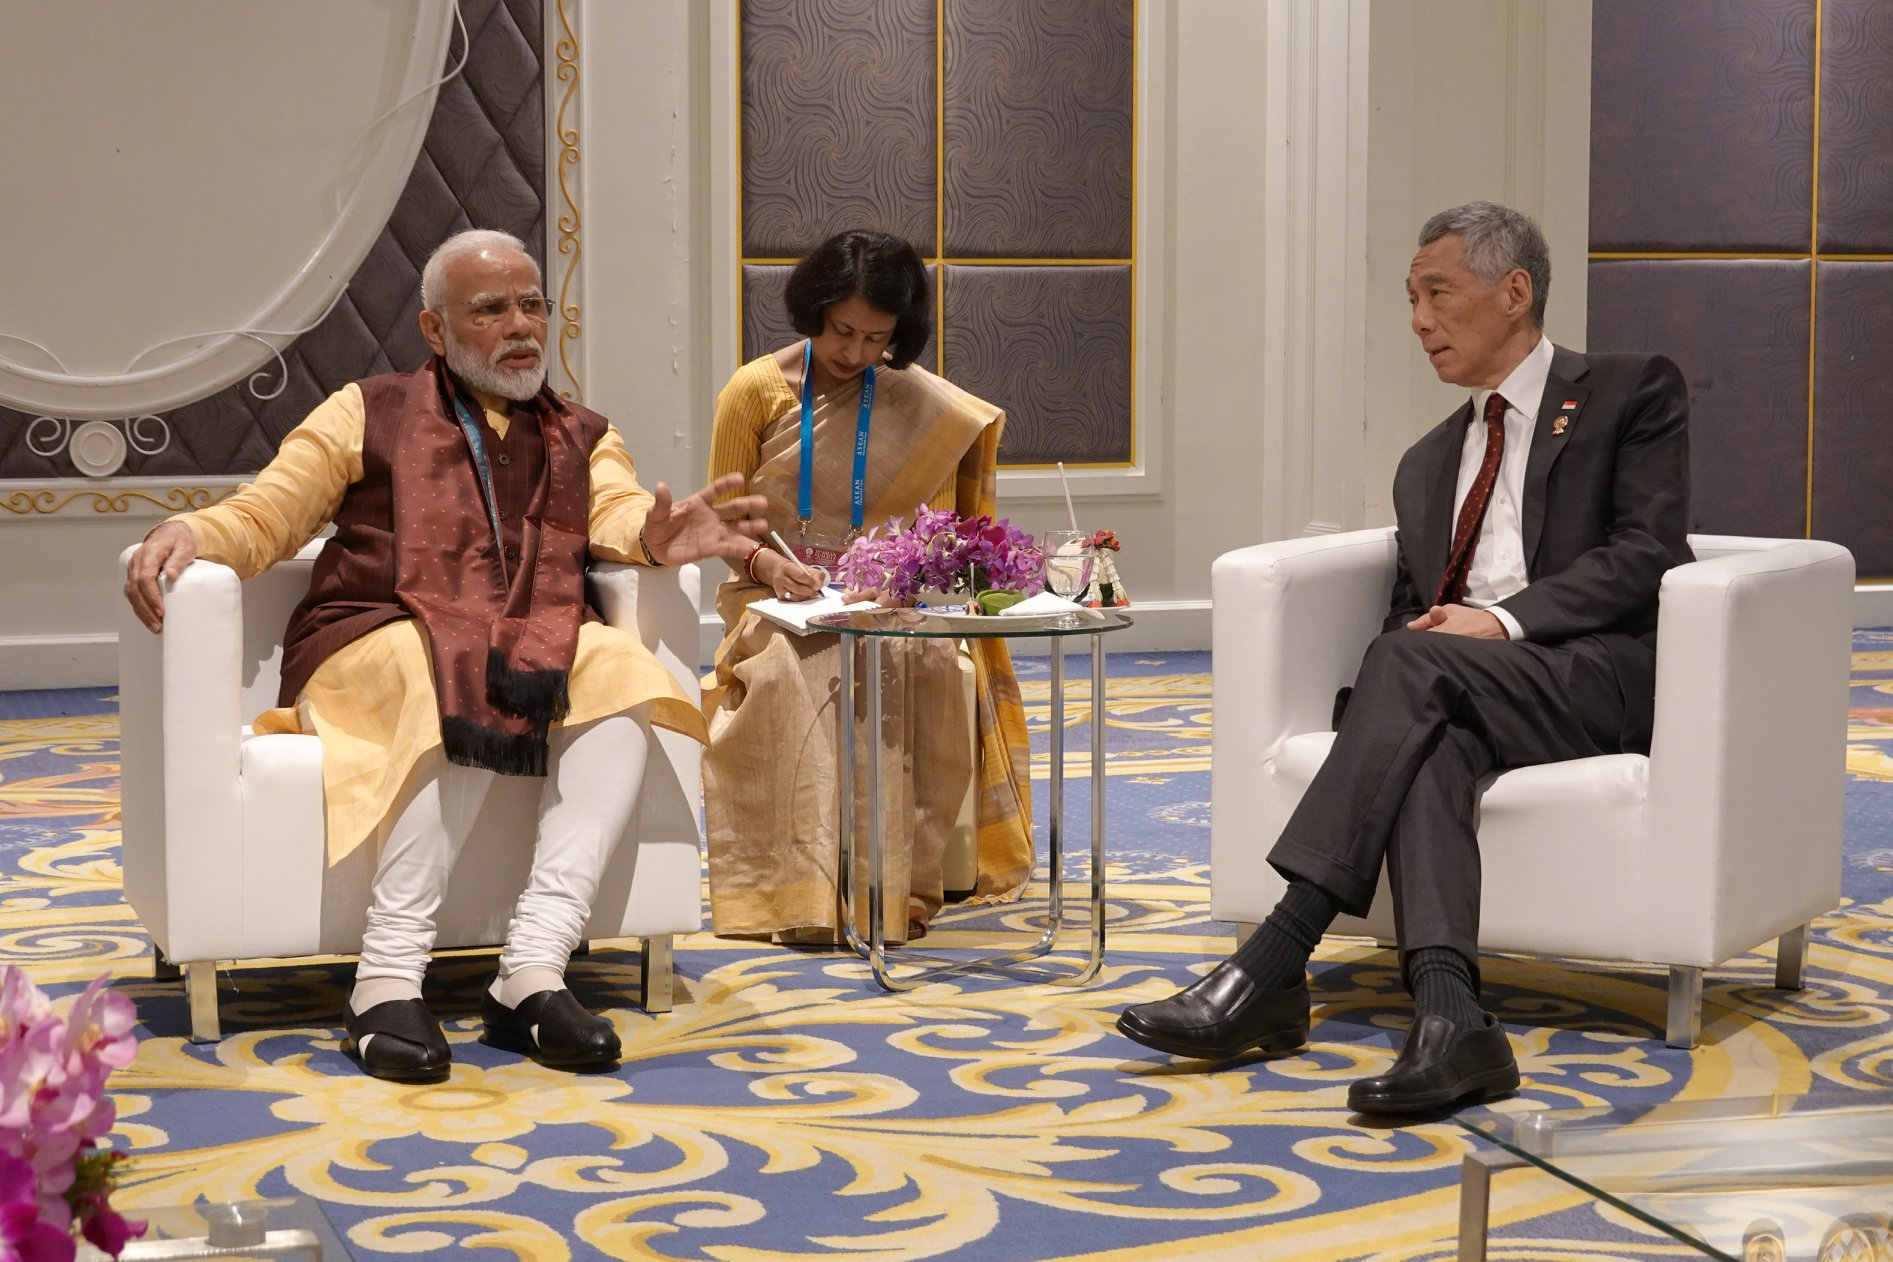 Prime Minister Lee Hsien Loong caught up with India PM Narendra Modi while waiting for the gala dinner at the ASEAN summit to begin. Photo courtesy: PMO